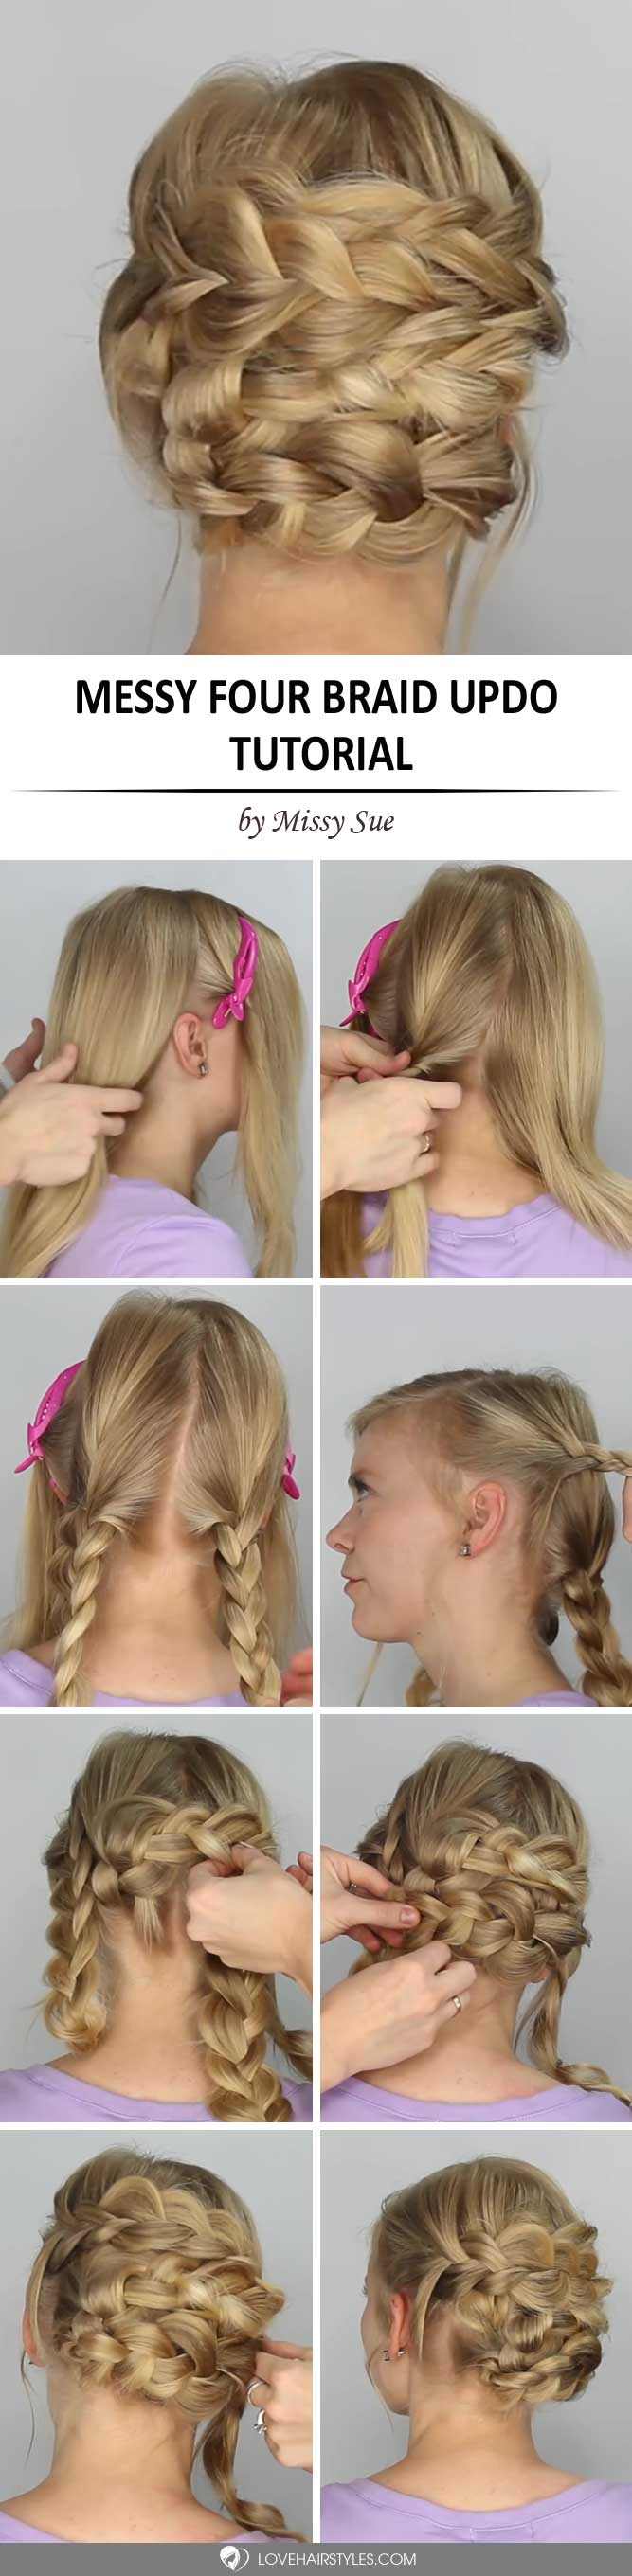 Messy Four Braids Style